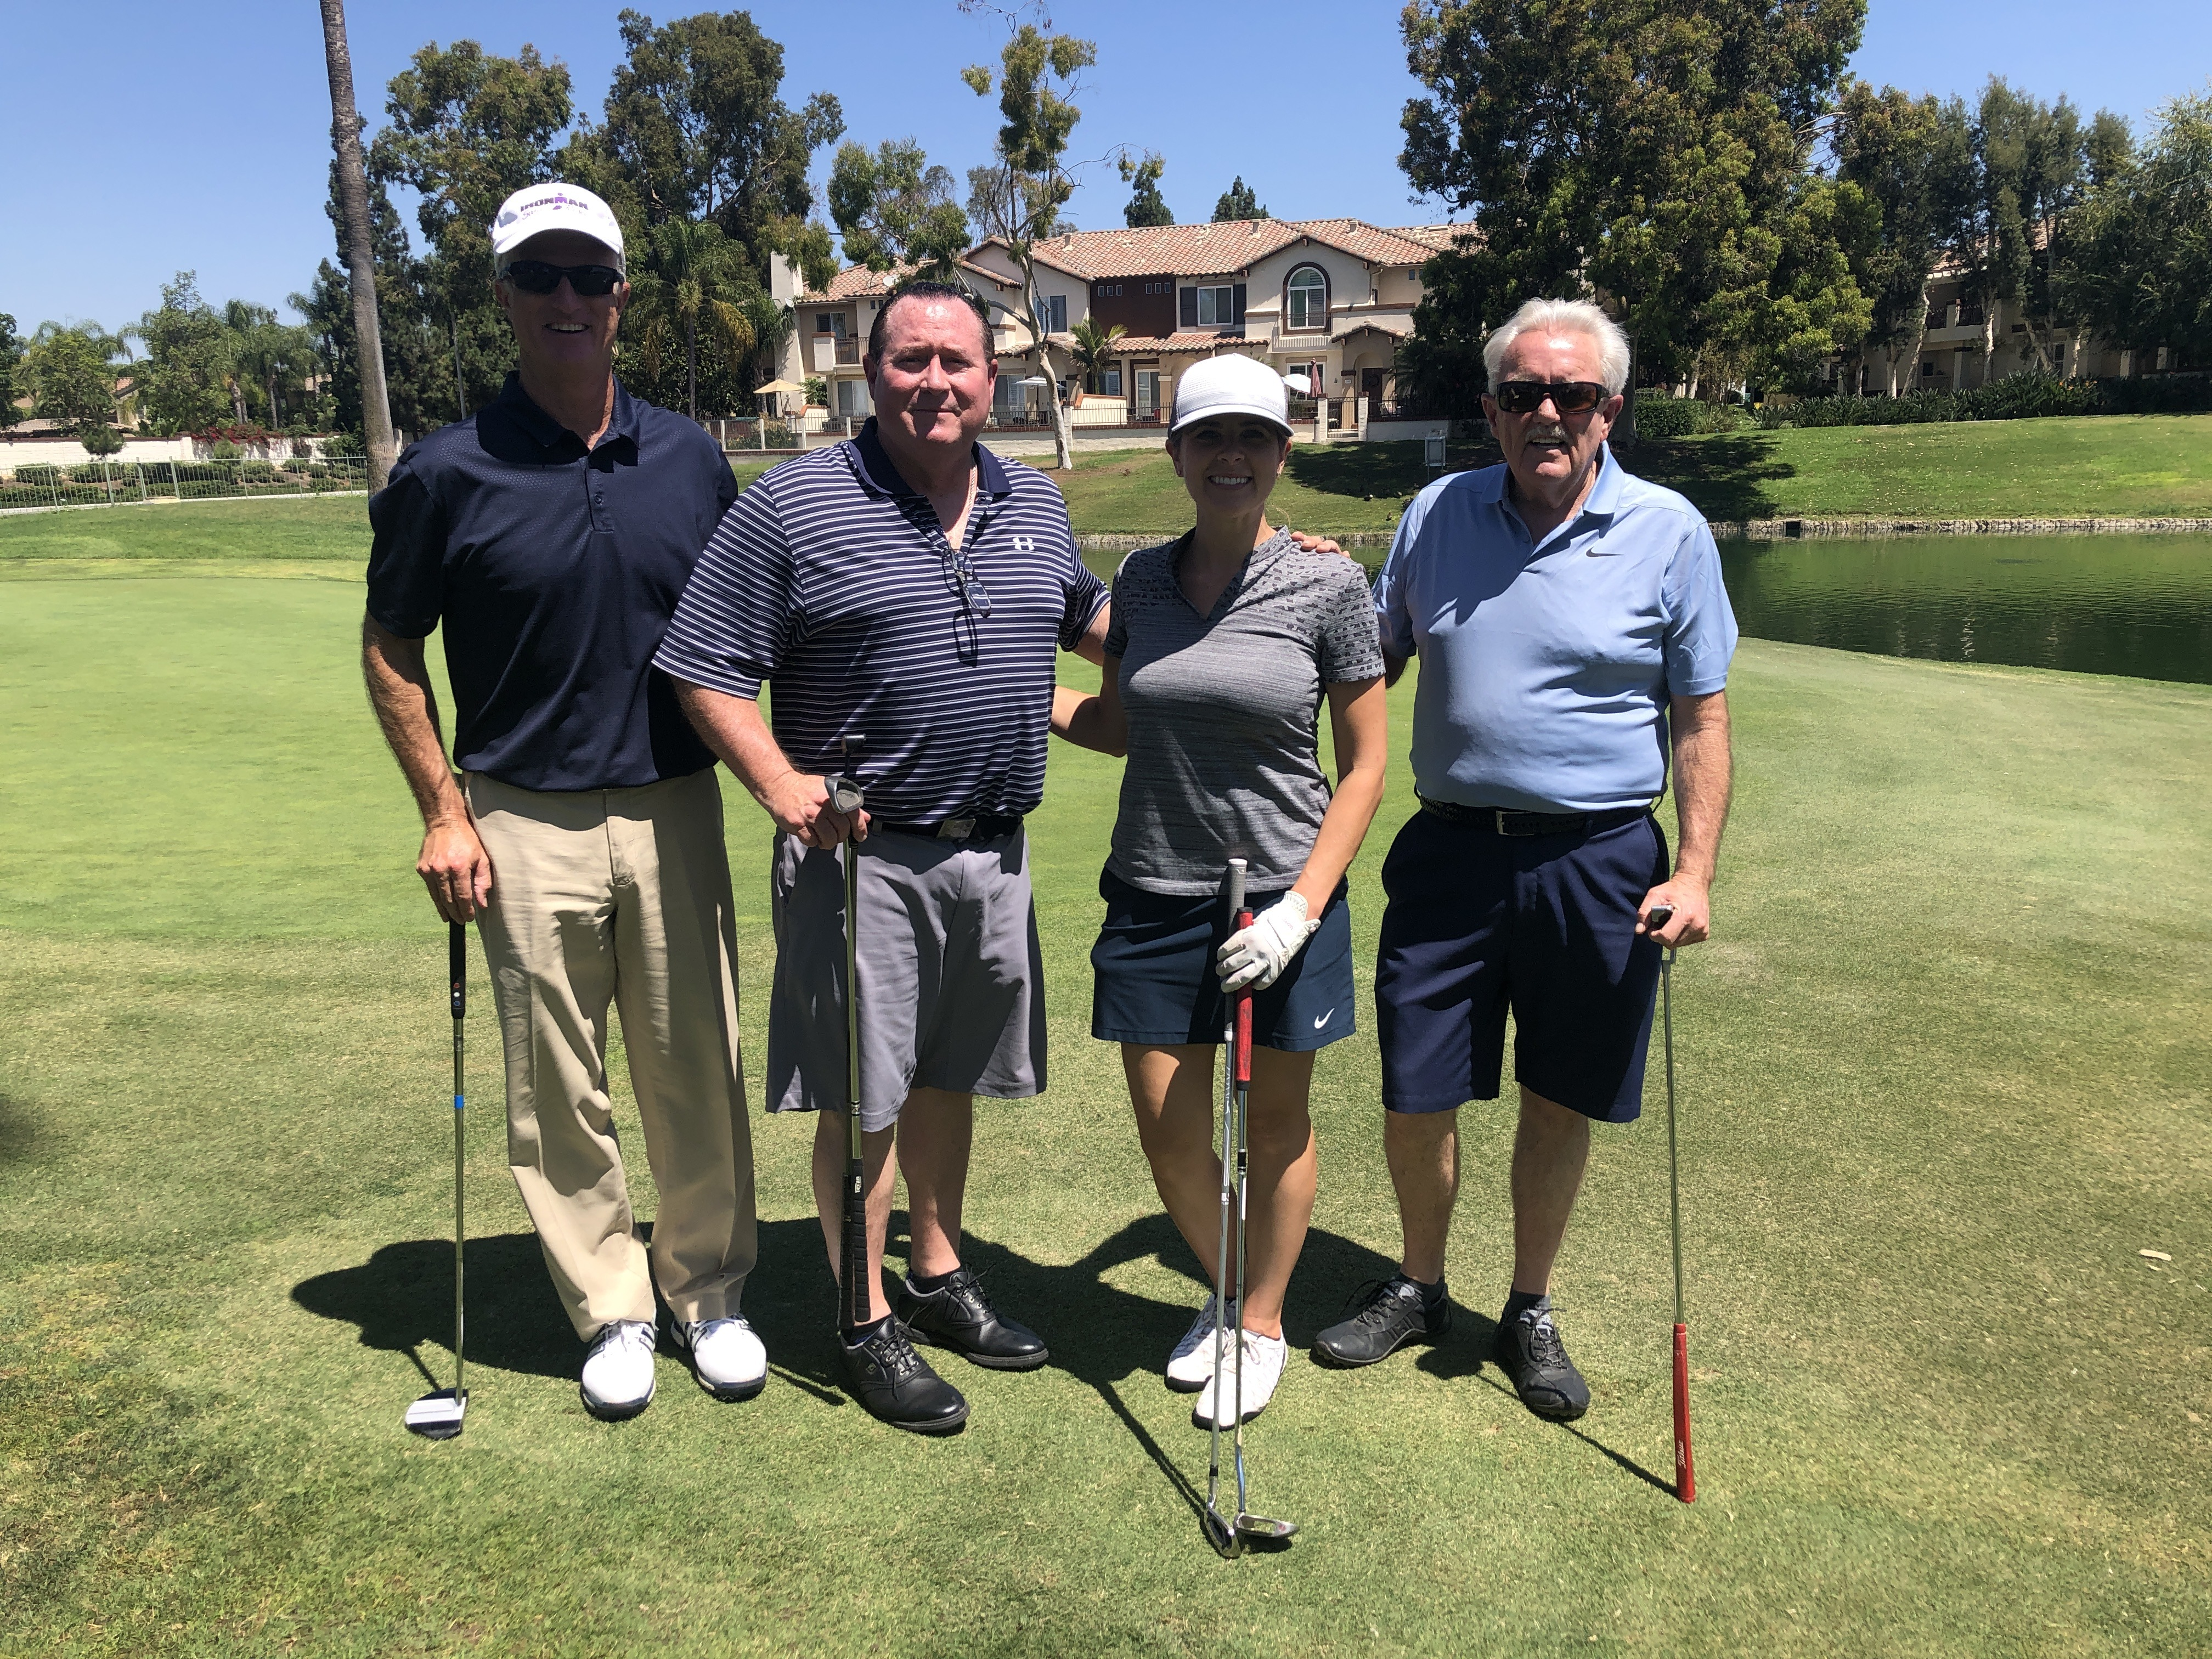 Kevin Allen of Pacific Southwest Container, John Savidan of Gelson's Markets, Audrey Dunne of Curation Foods, and Pat McDowell of Perimeter Sales & Merchandising.